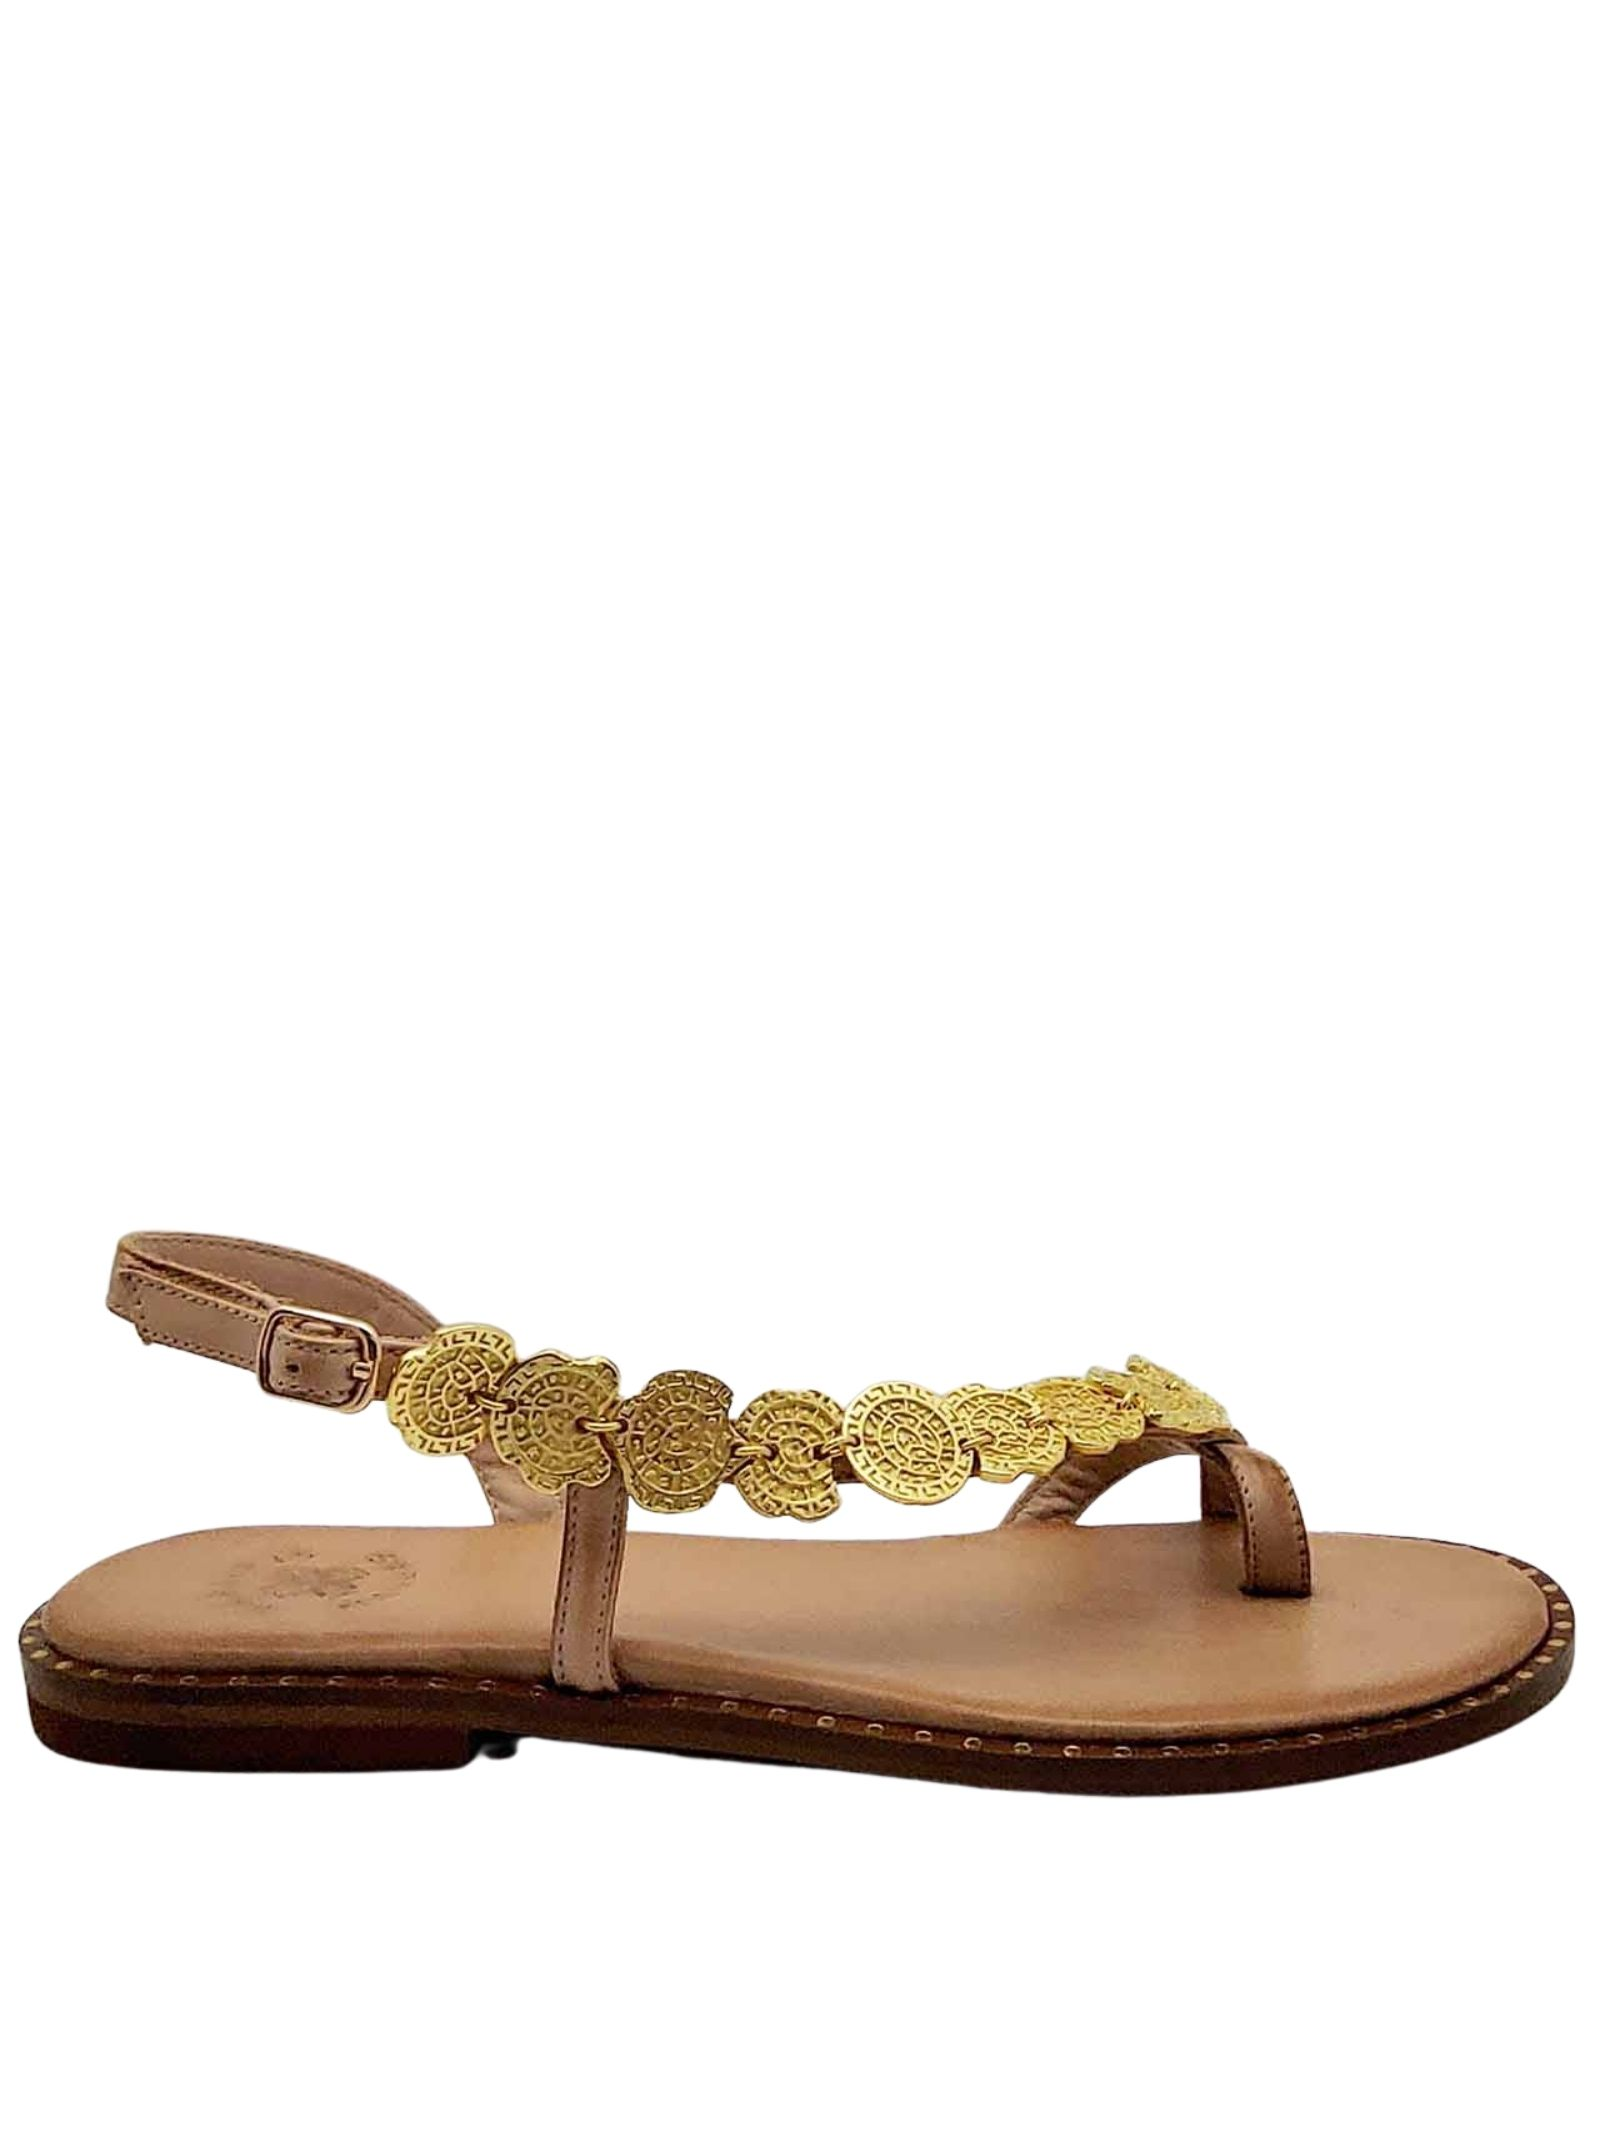 Women's Shoes Flat Flip Flops Sandals in Natural Leather Tan with Gold Accessories Ankle Strap and Rubber Bottom Exe | Flat sandals | 600300